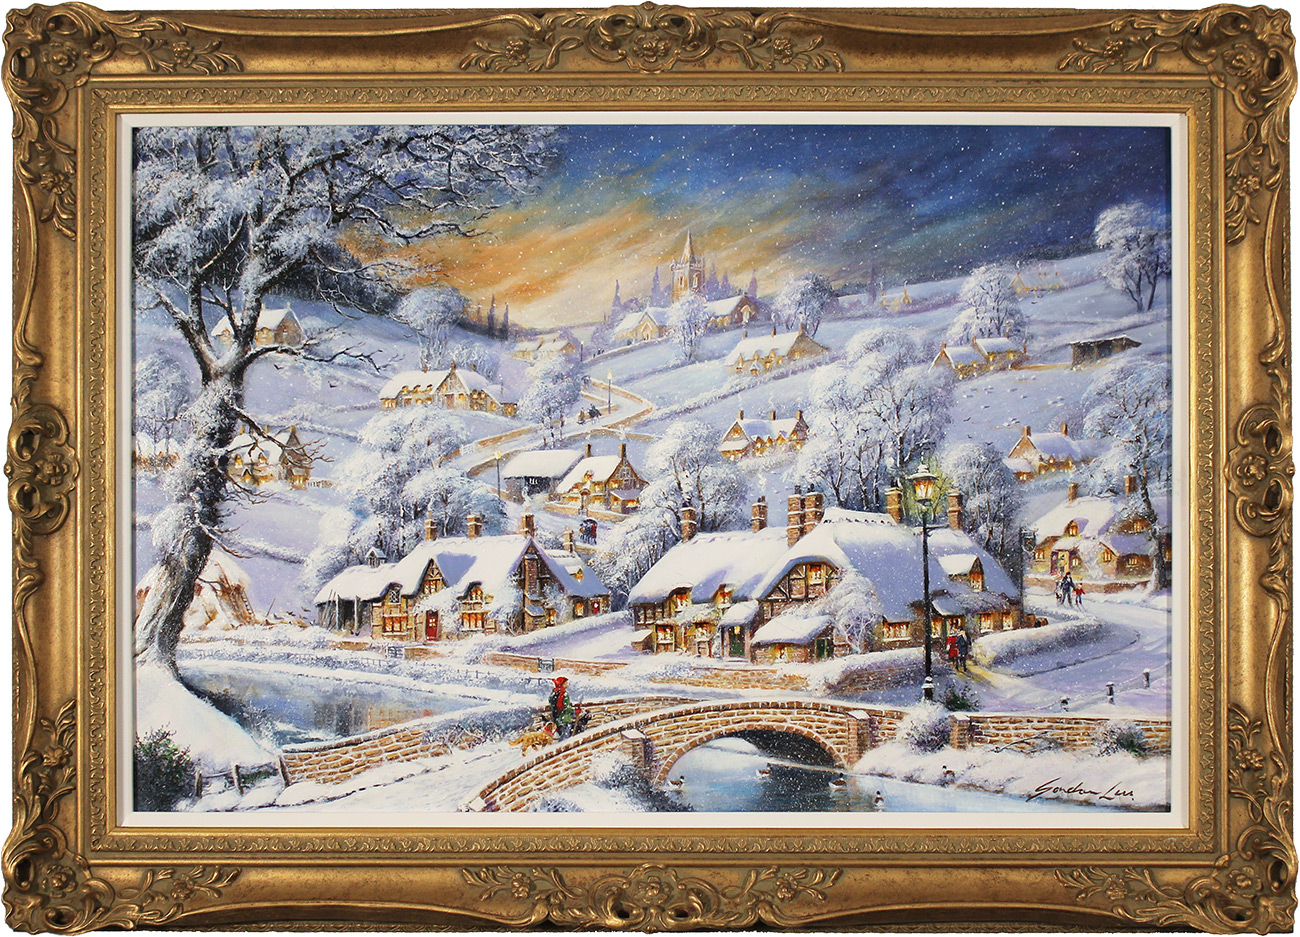 Gordon Lees, Original oil painting on panel, Snowfall and Starry Skies Click to enlarge